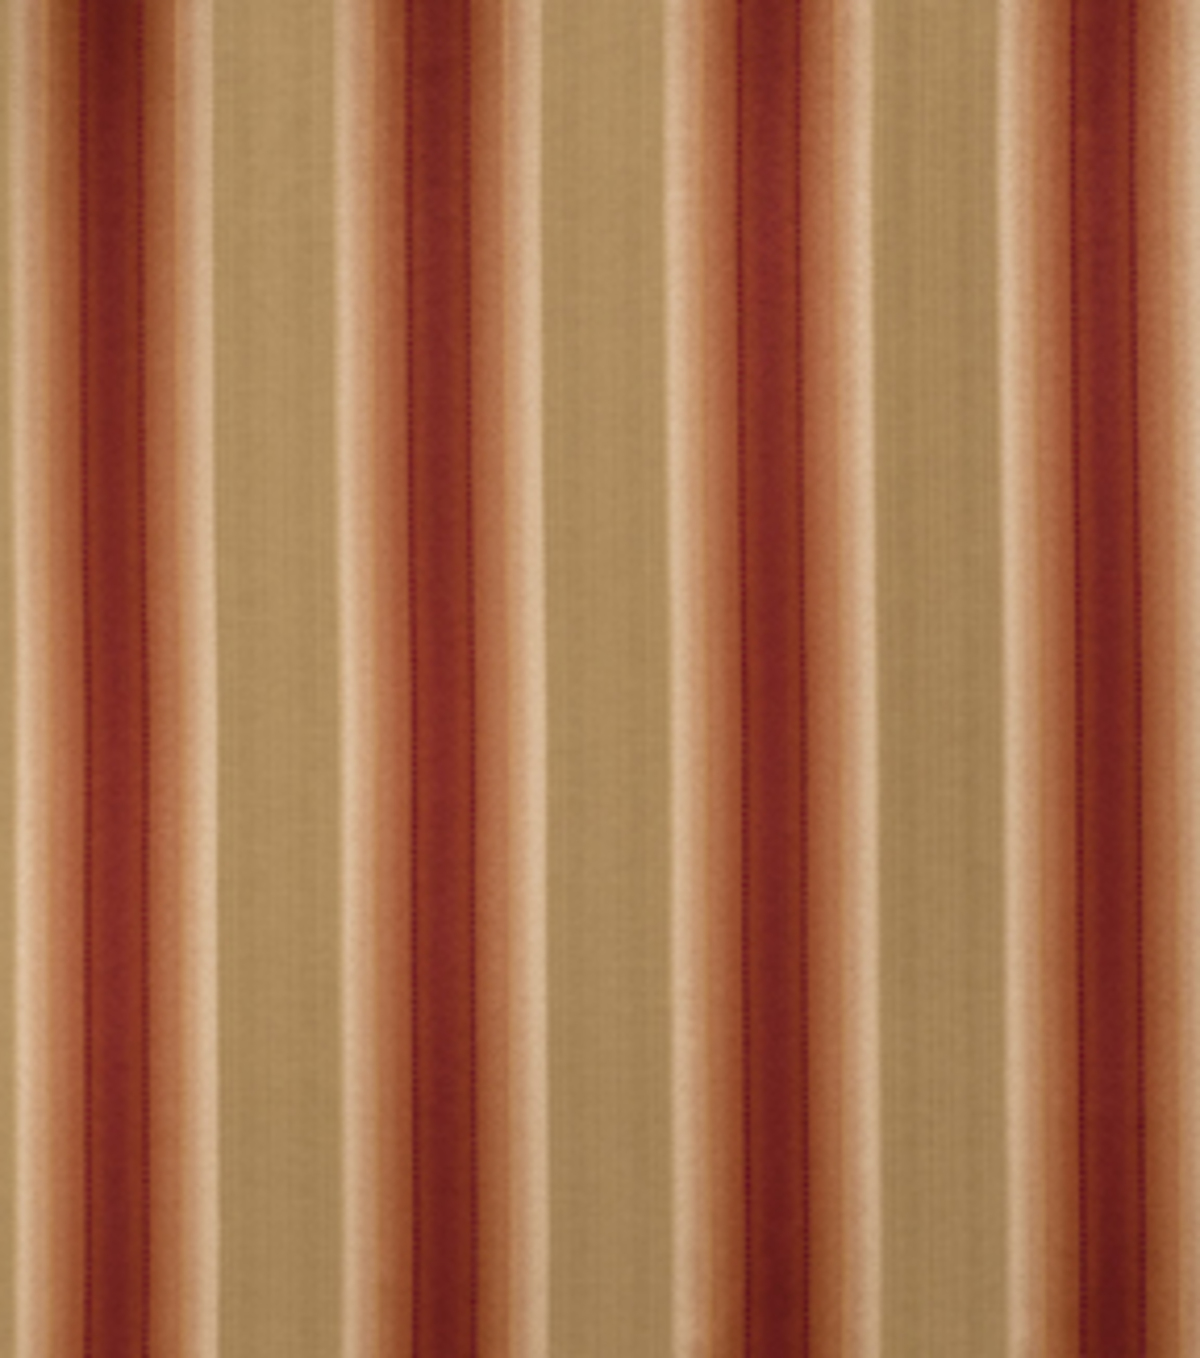 Home Decor 8\u0022x8\u0022 Fabric Swatch-Print Fabric Eaton Square Miriam Vermillion